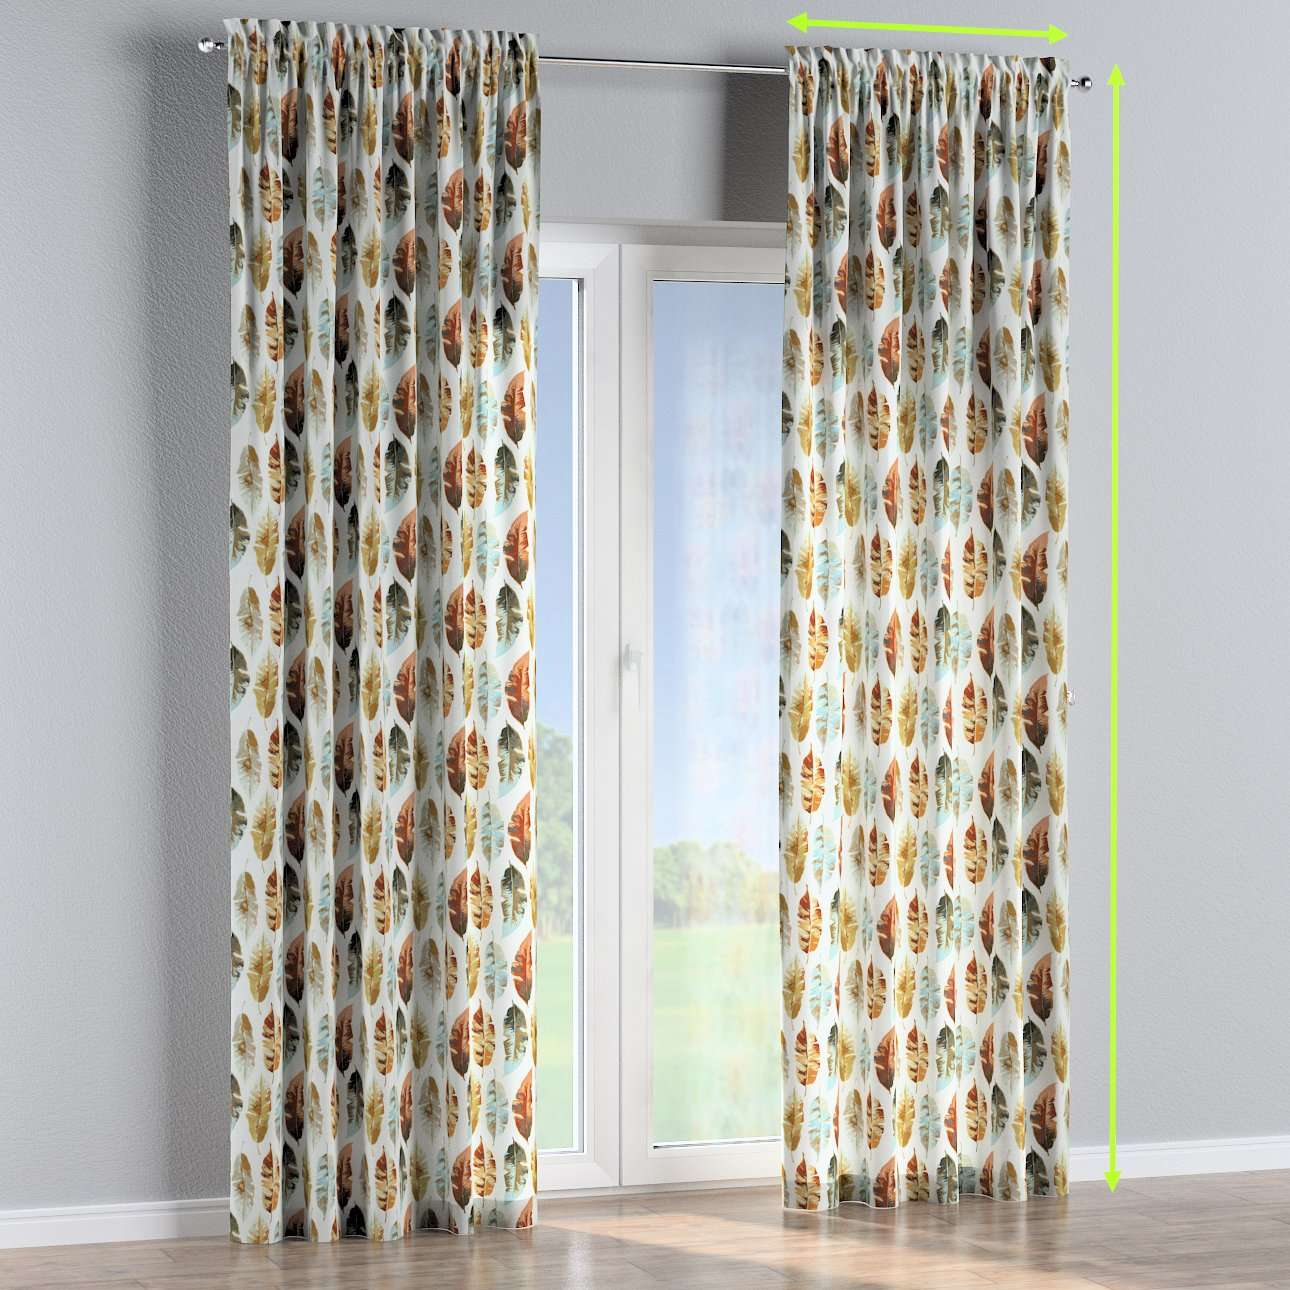 Slot and frill lined curtains in collection Urban Jungle, fabric: 141-43